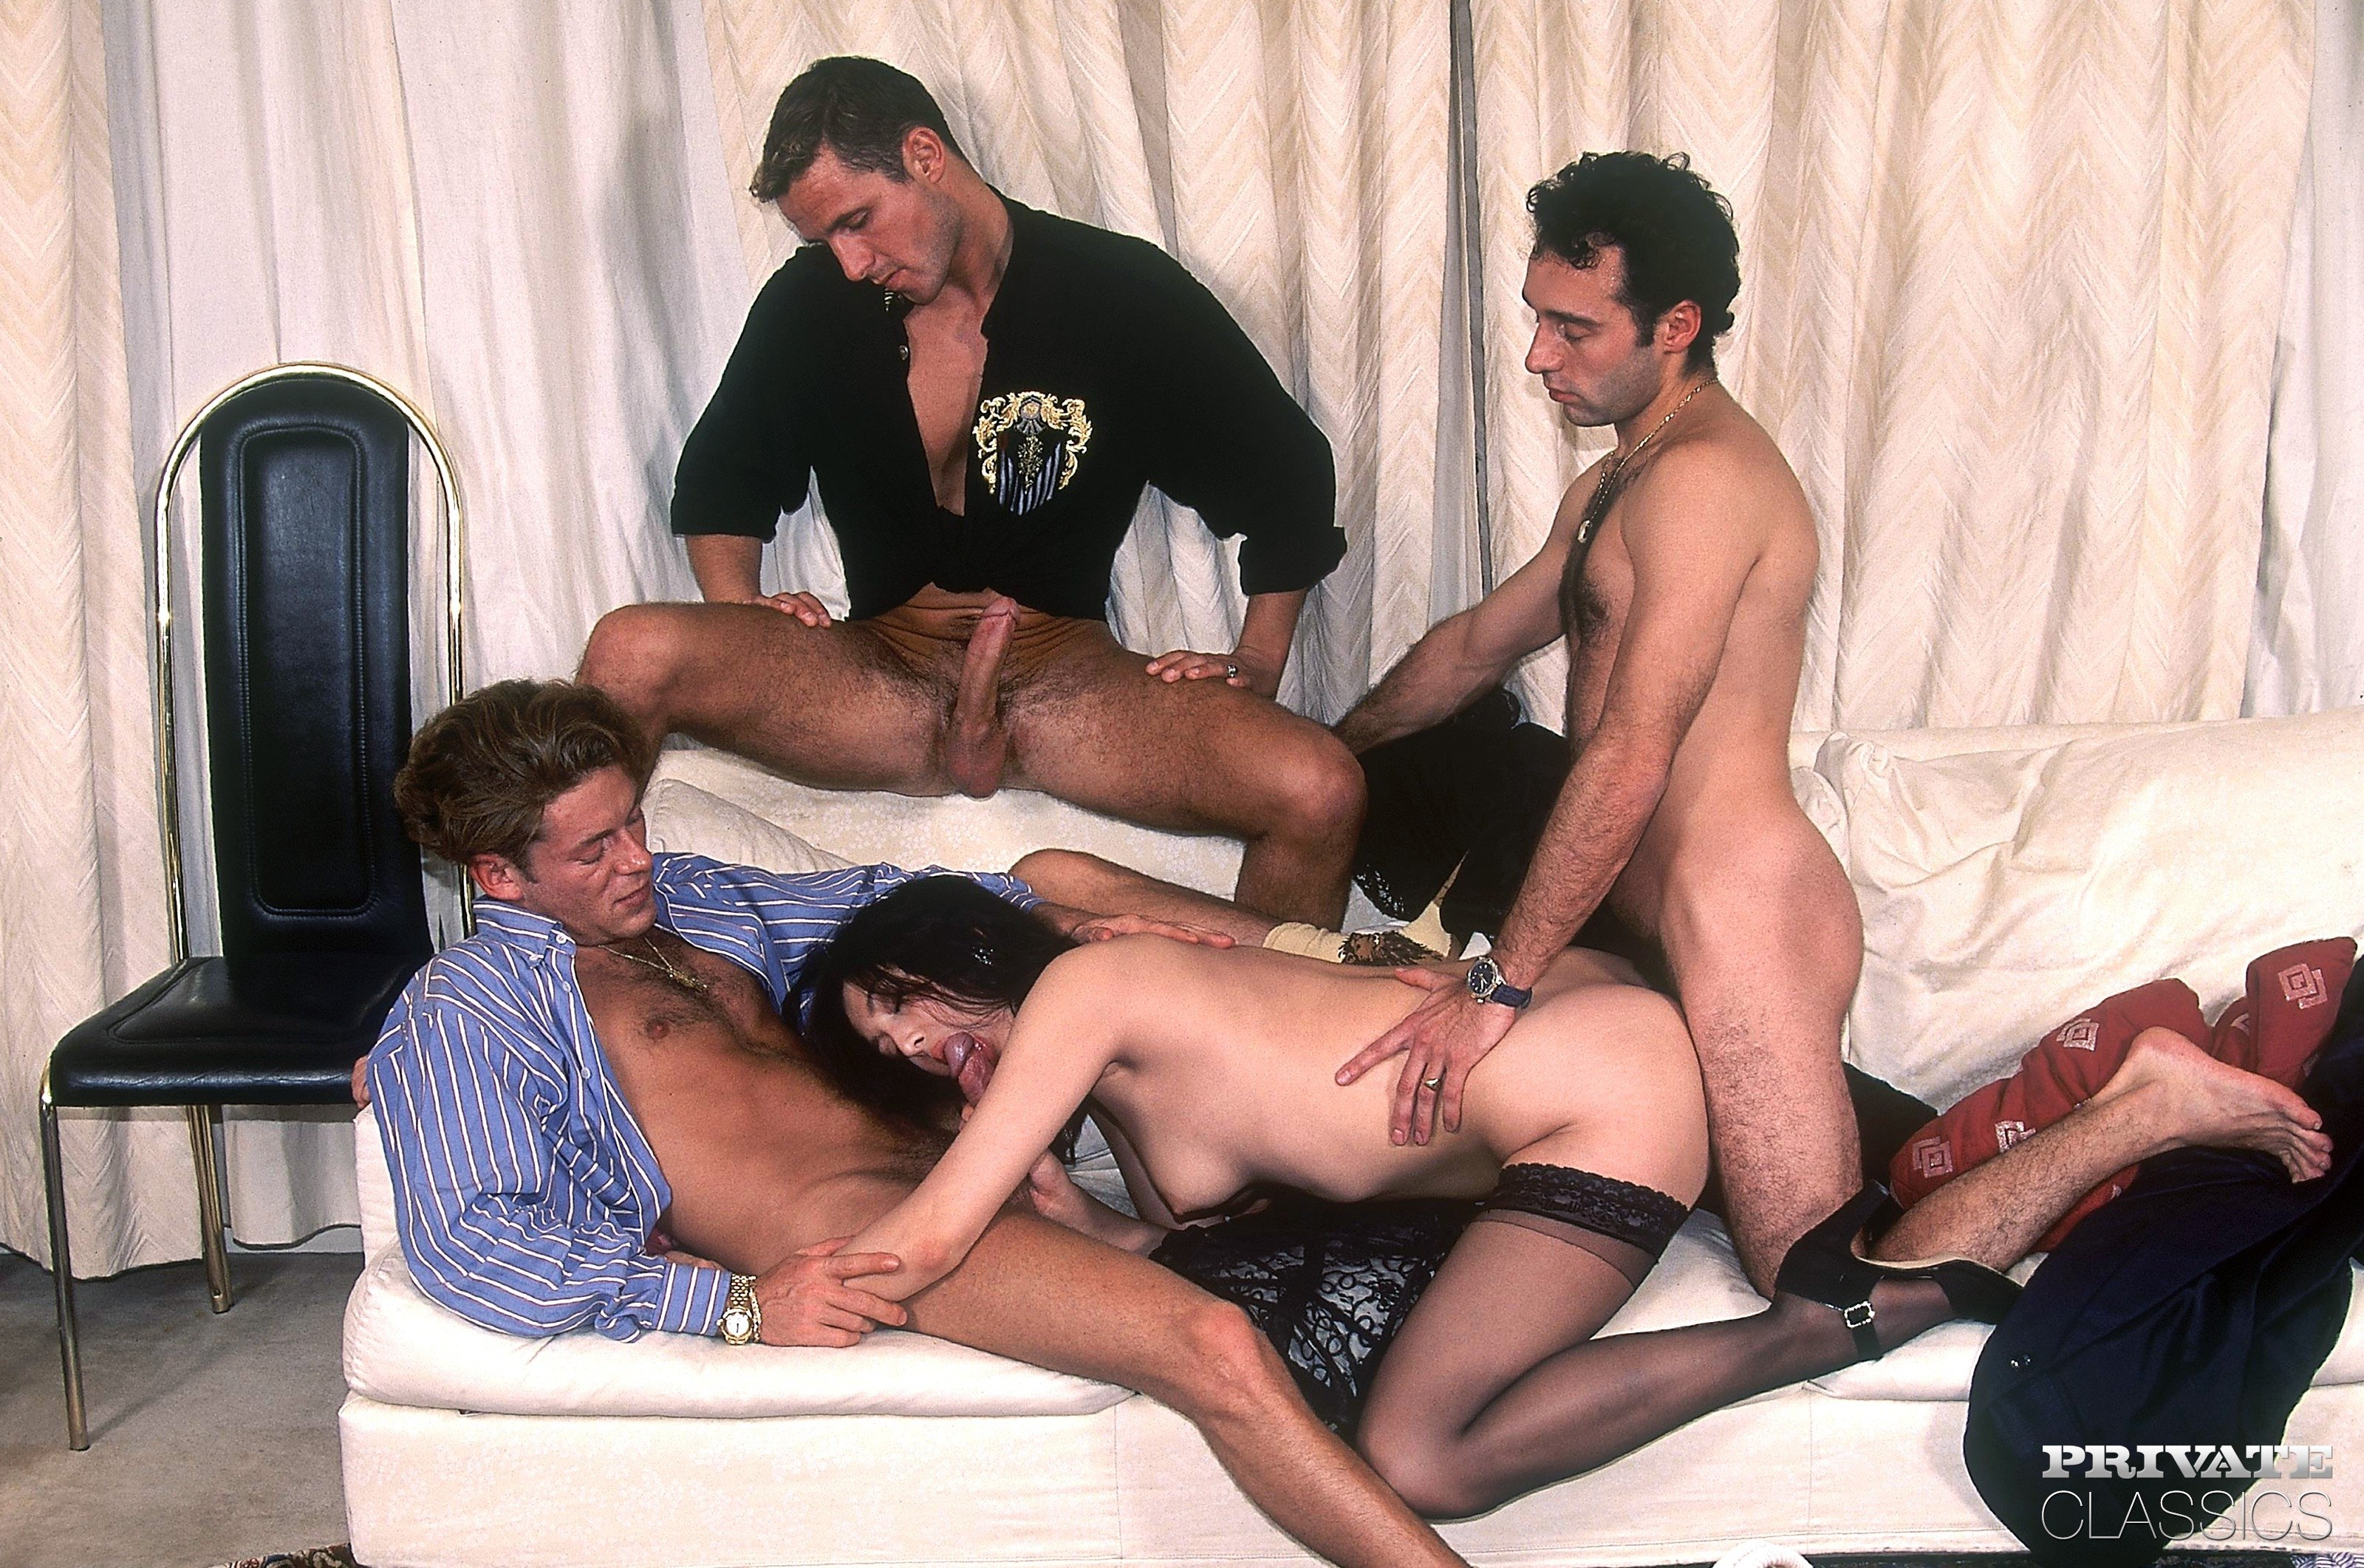 ussr-gangbang-porno-picture